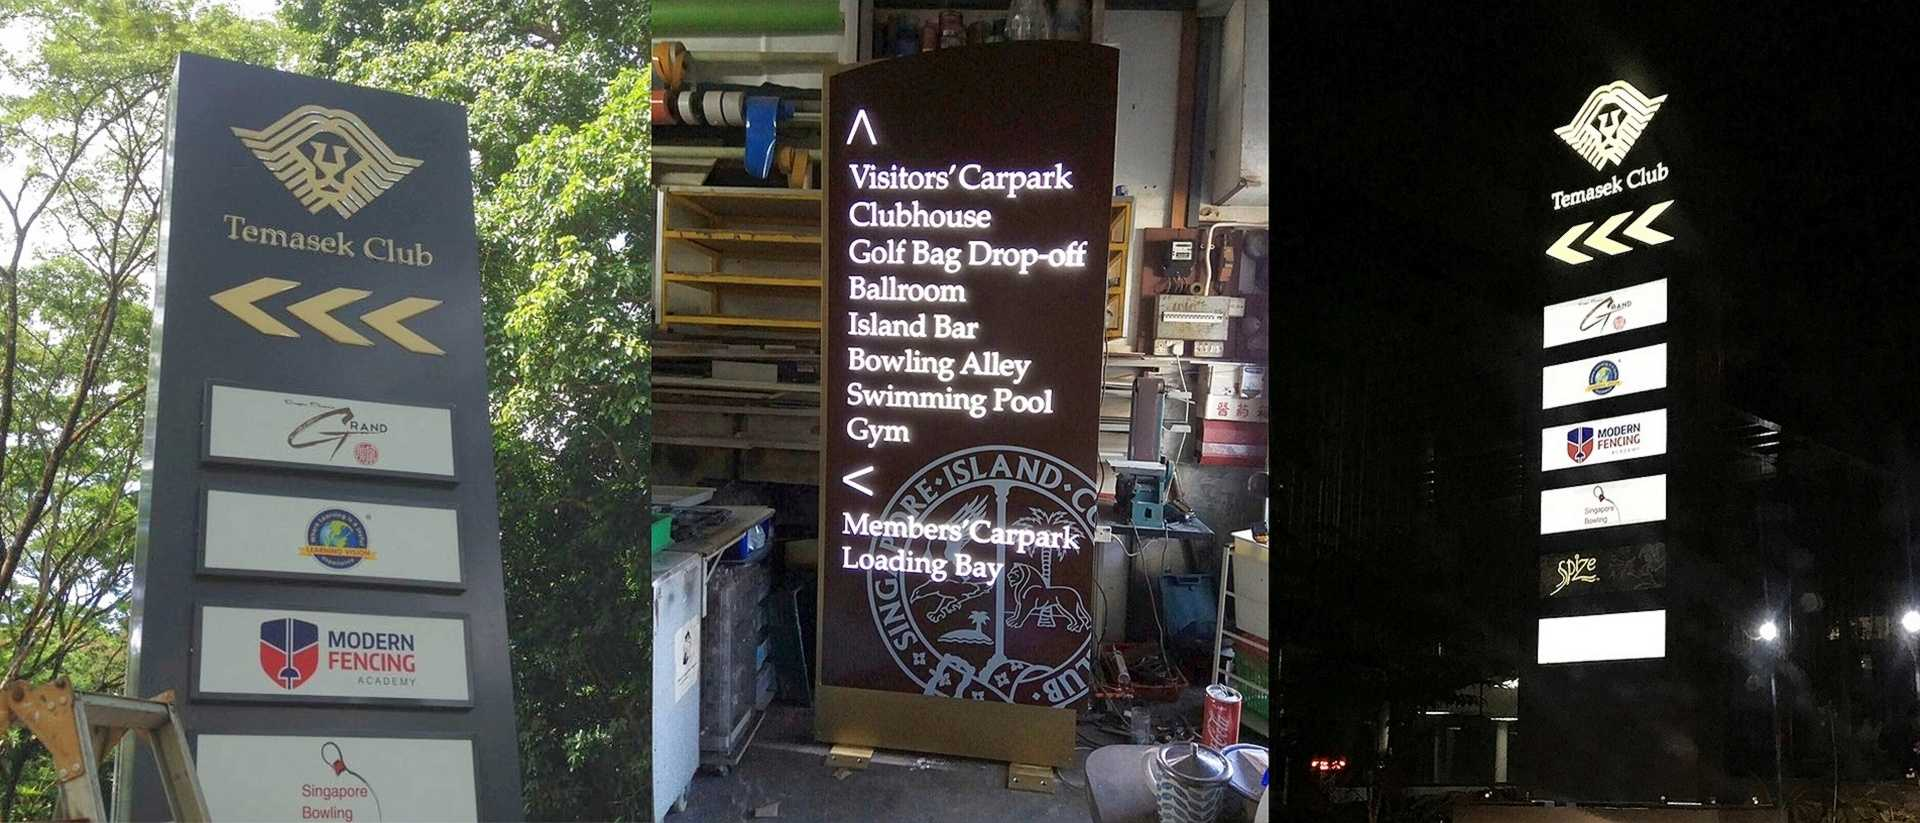 LED-lit main entrance pylon signs